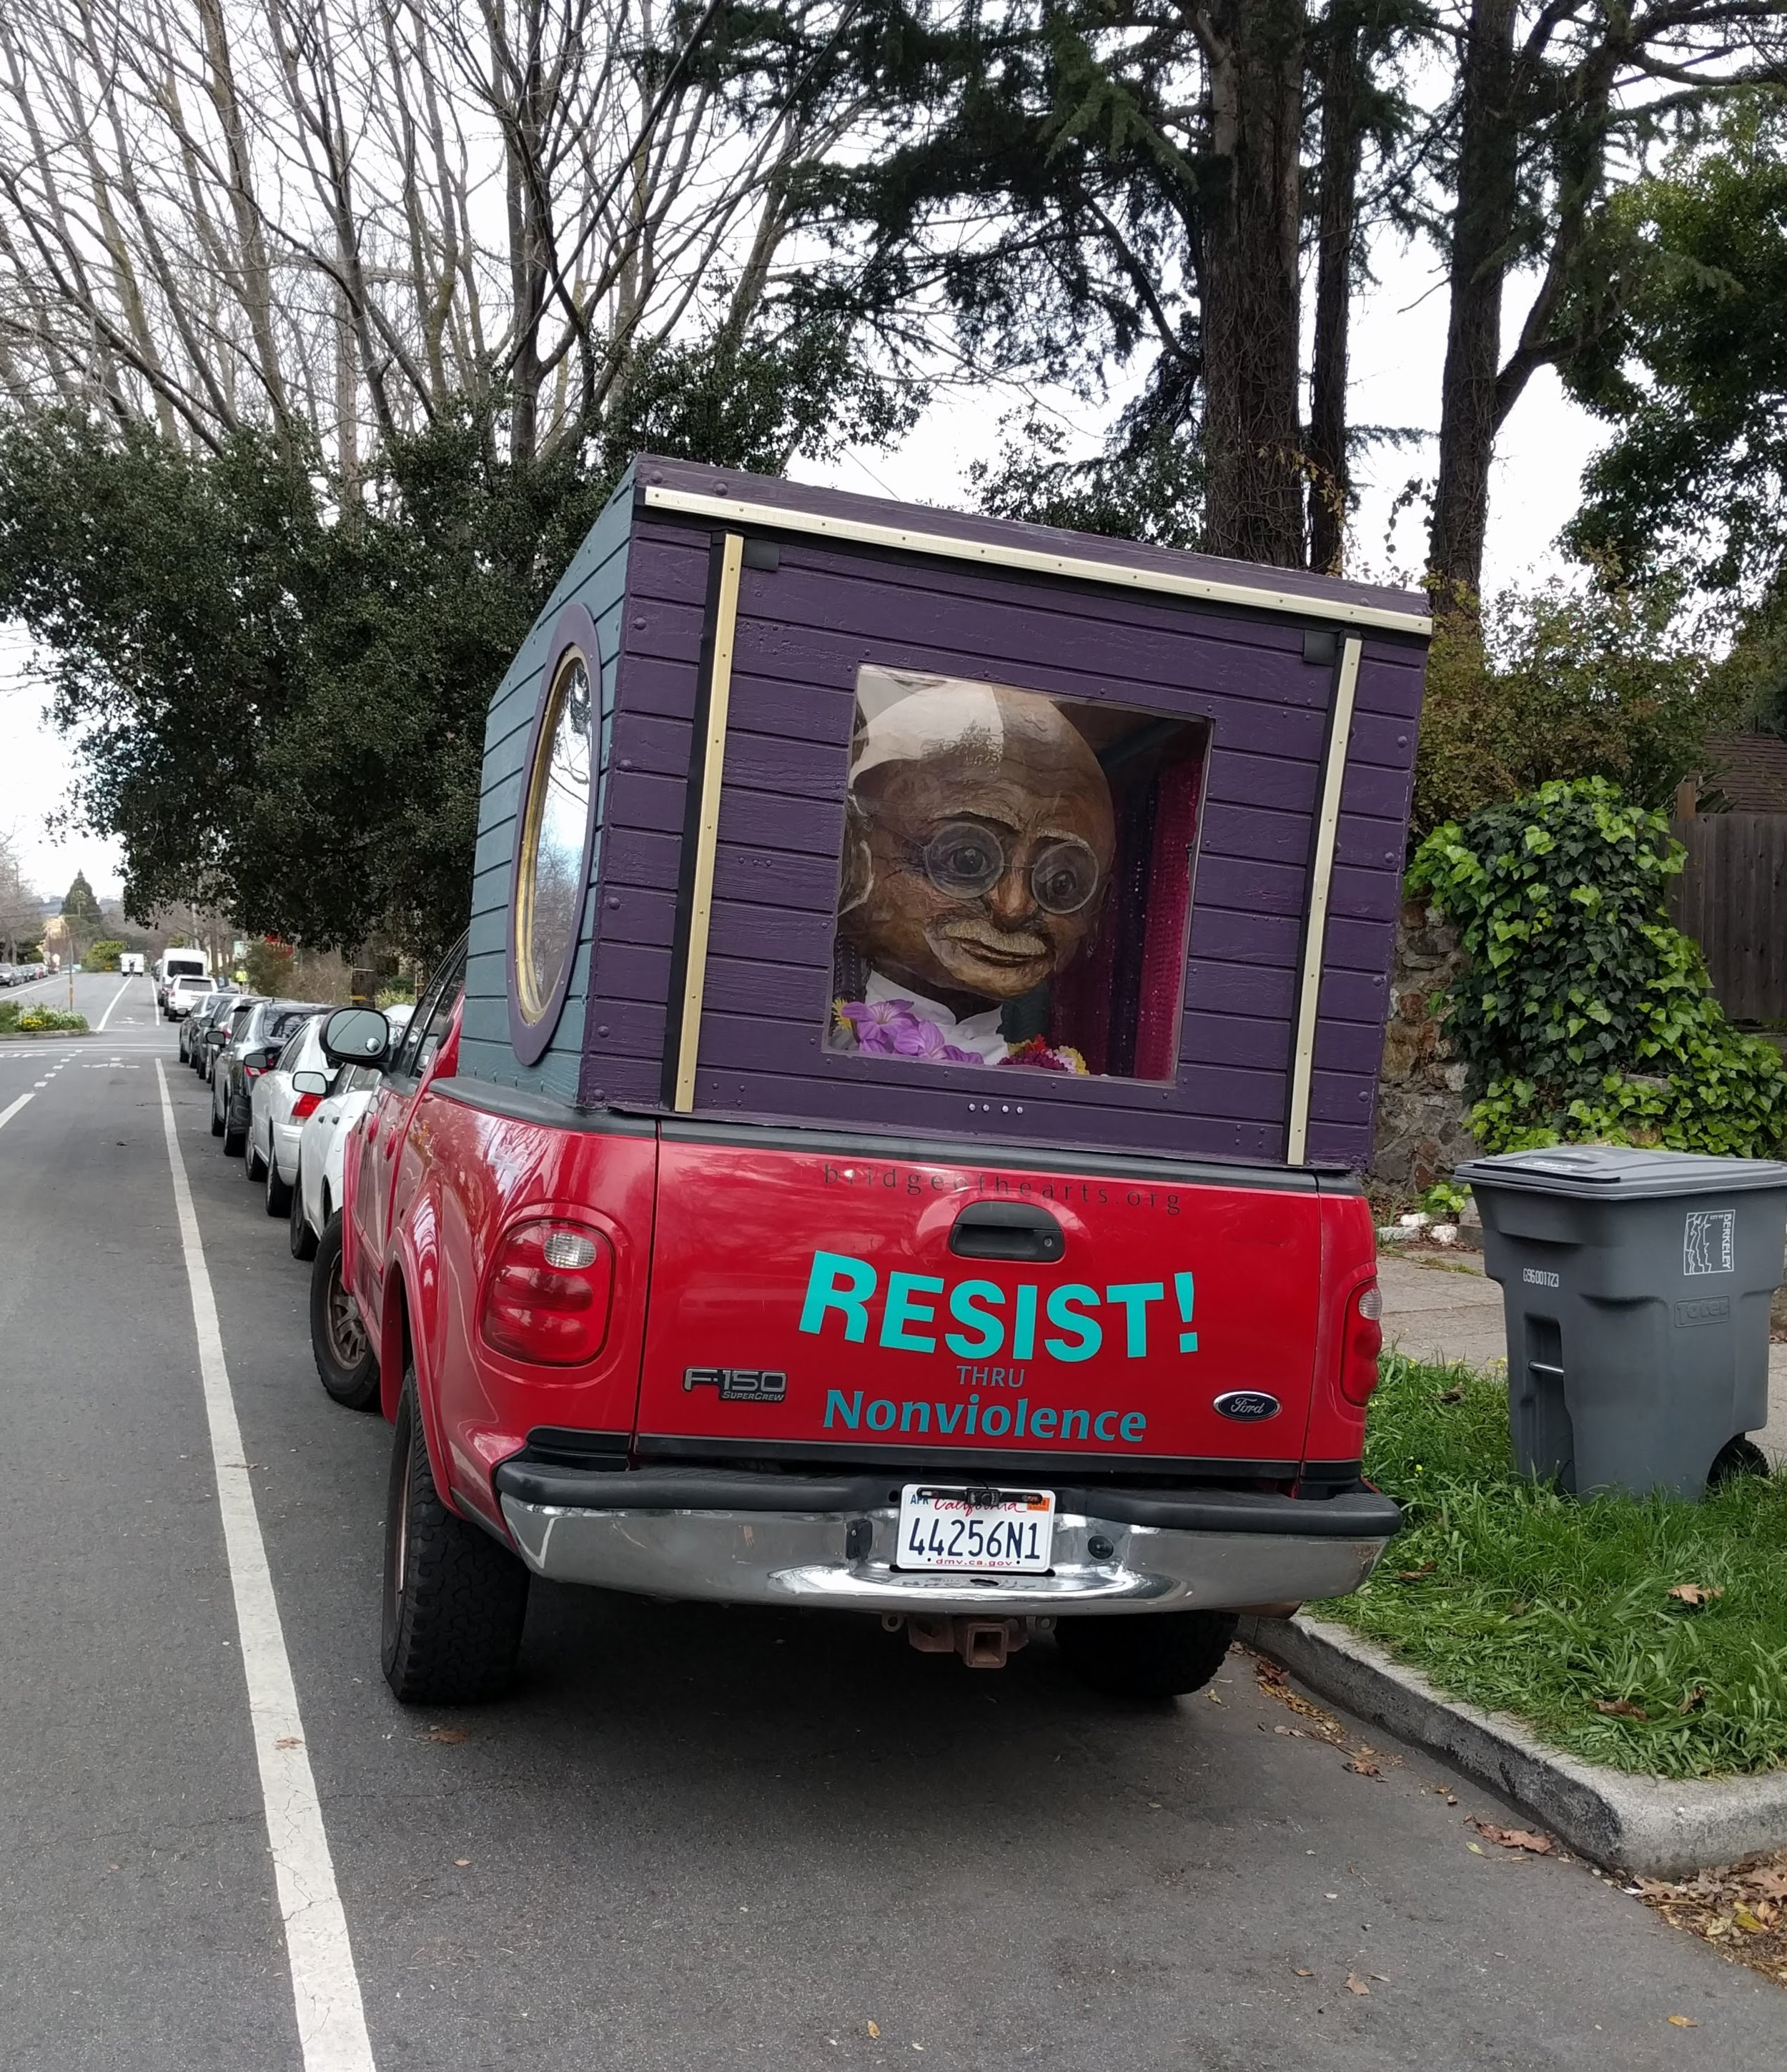 Thanks to my bike ride, I got to witness this anti-popemobile featuring Gandhi. Classic Berkeley.